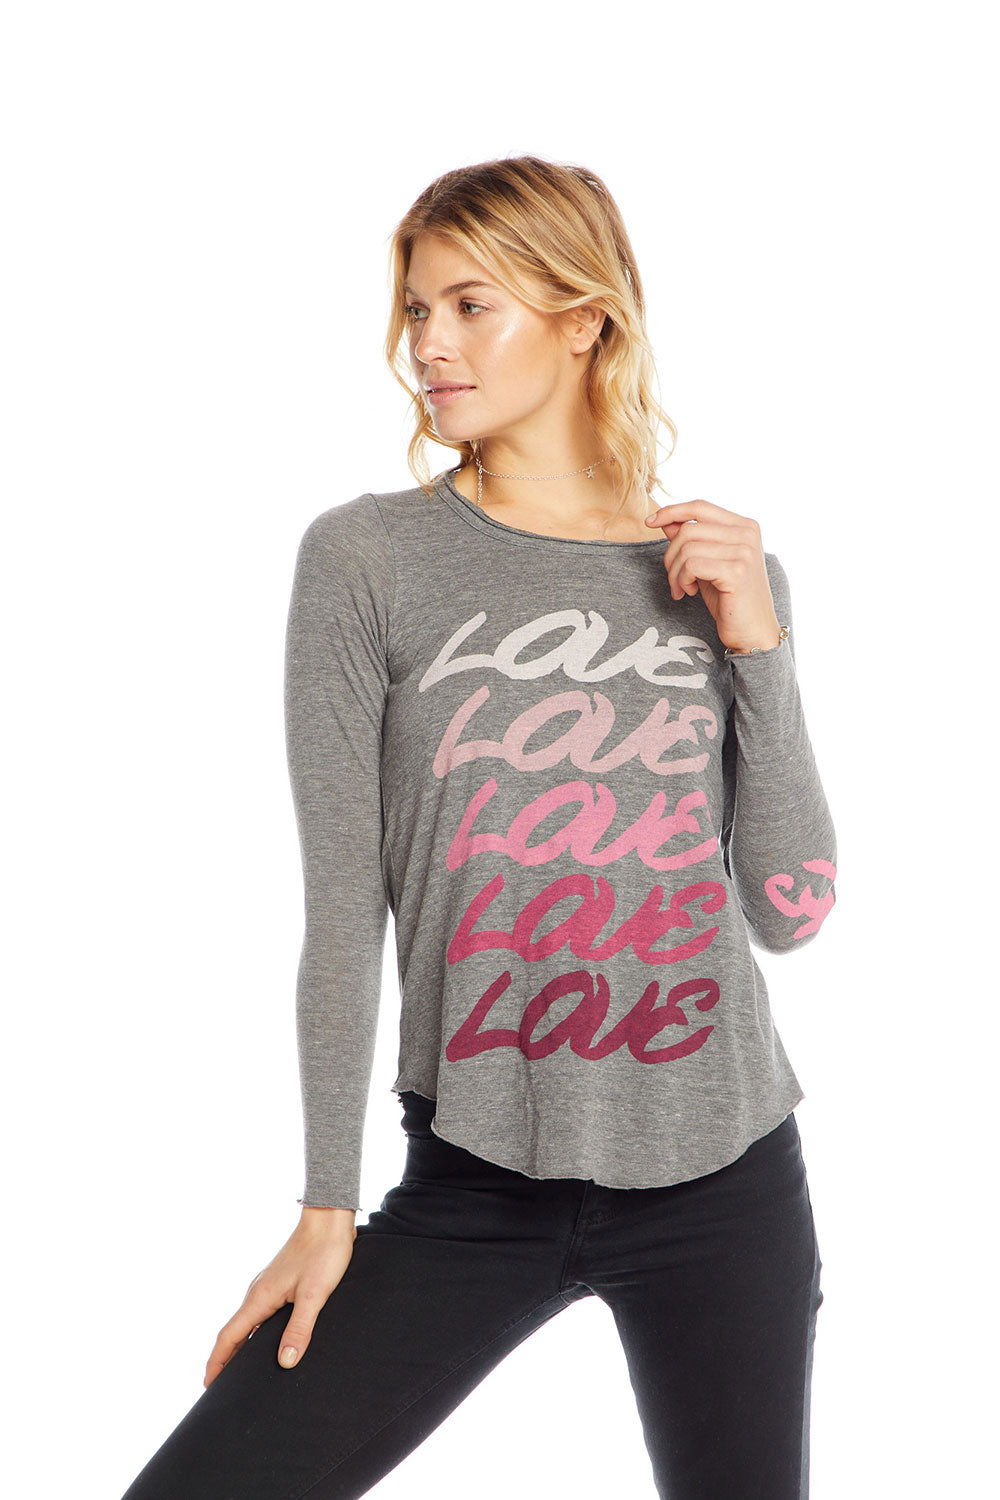 Love, WOMENS, chaserbrand.com,chaser clothing,chaser apparel,chaser los angeles